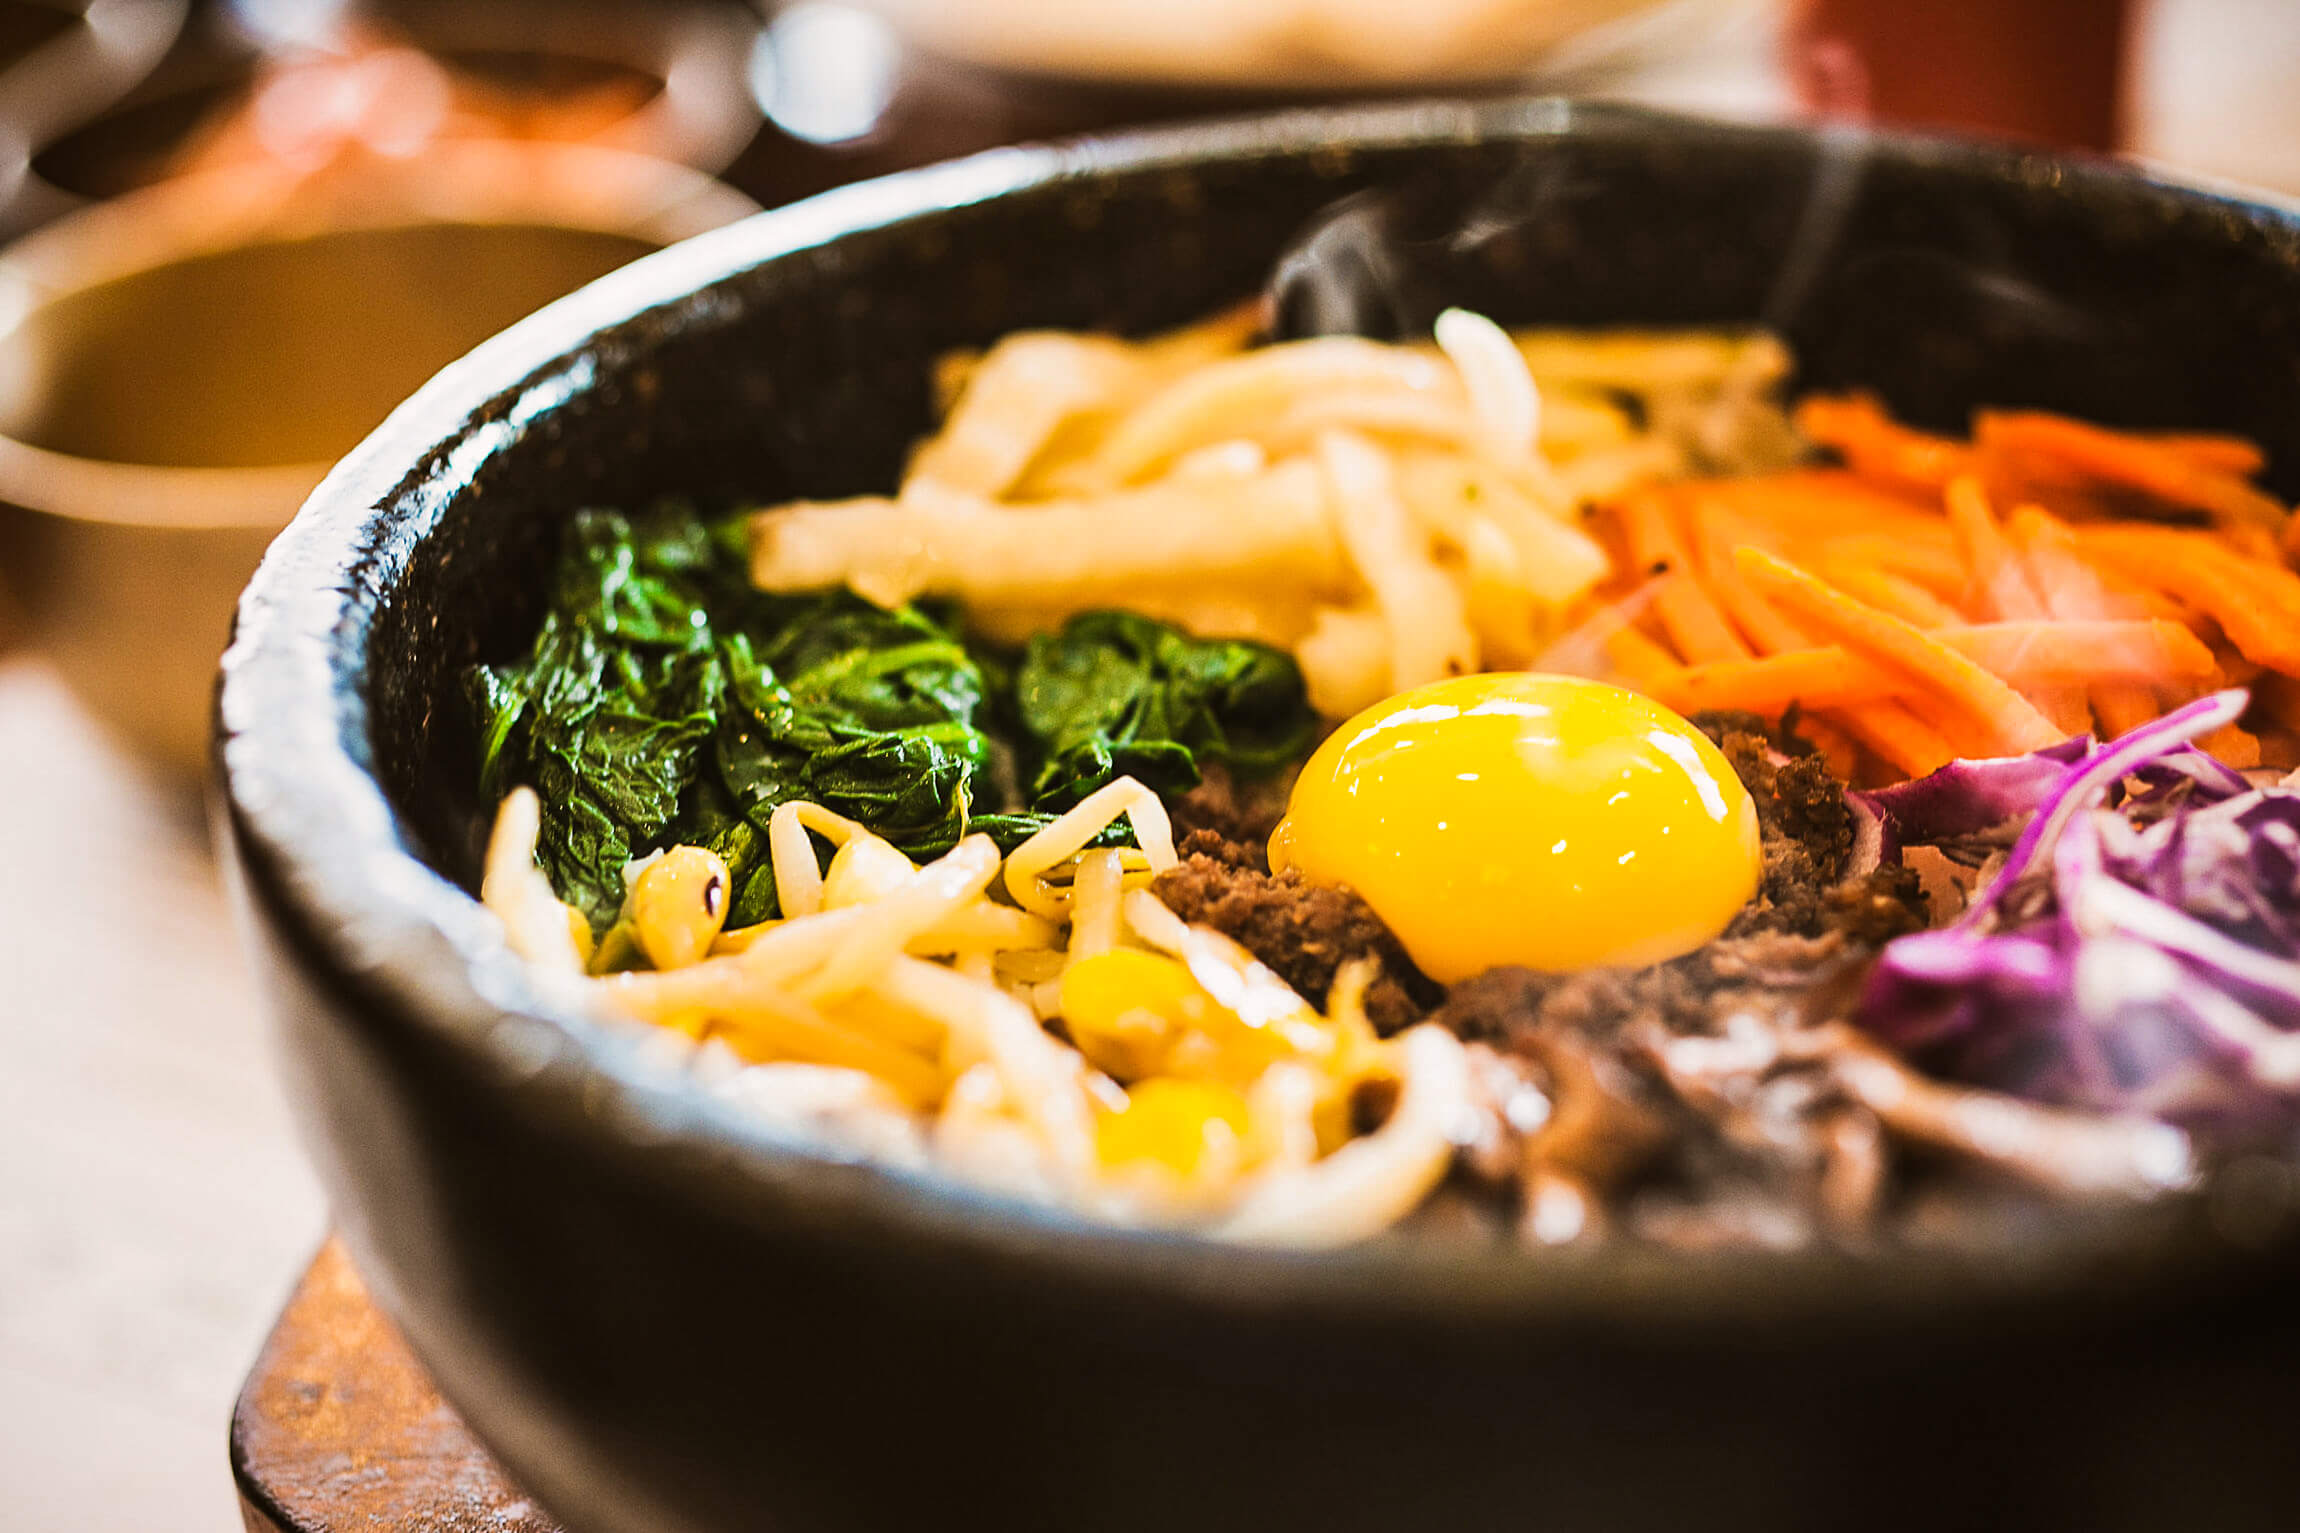 A dolsot bowl filled with bibimbap, a layer of rice topped with meats, veggies and an over-easy egg.